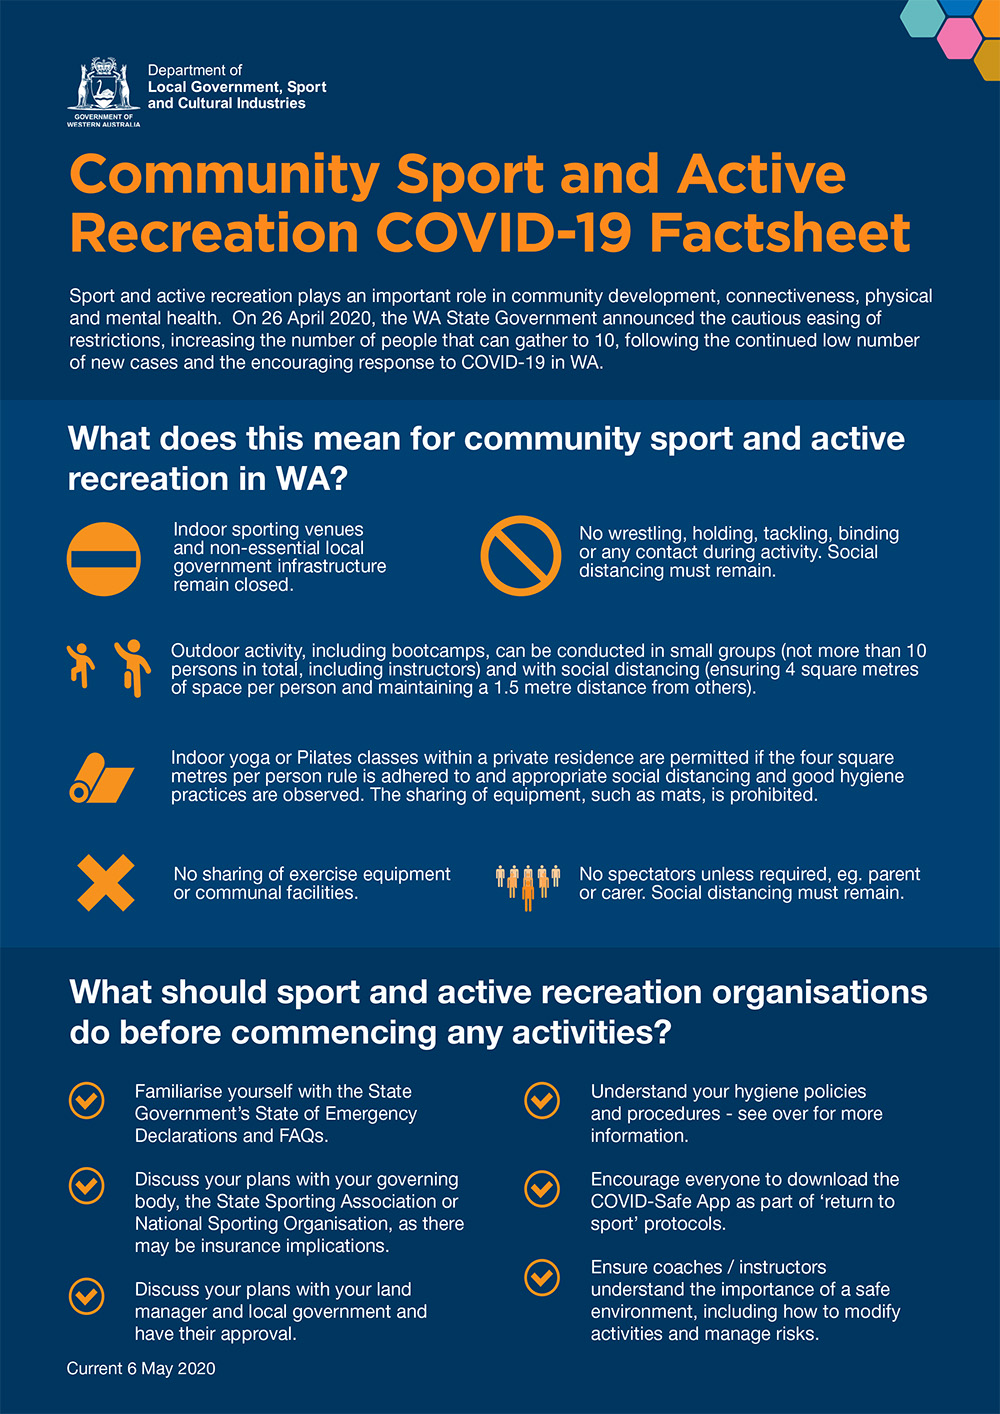 Community Sport and Active Recreation COVID-19 Factsheet_6 May2020-1